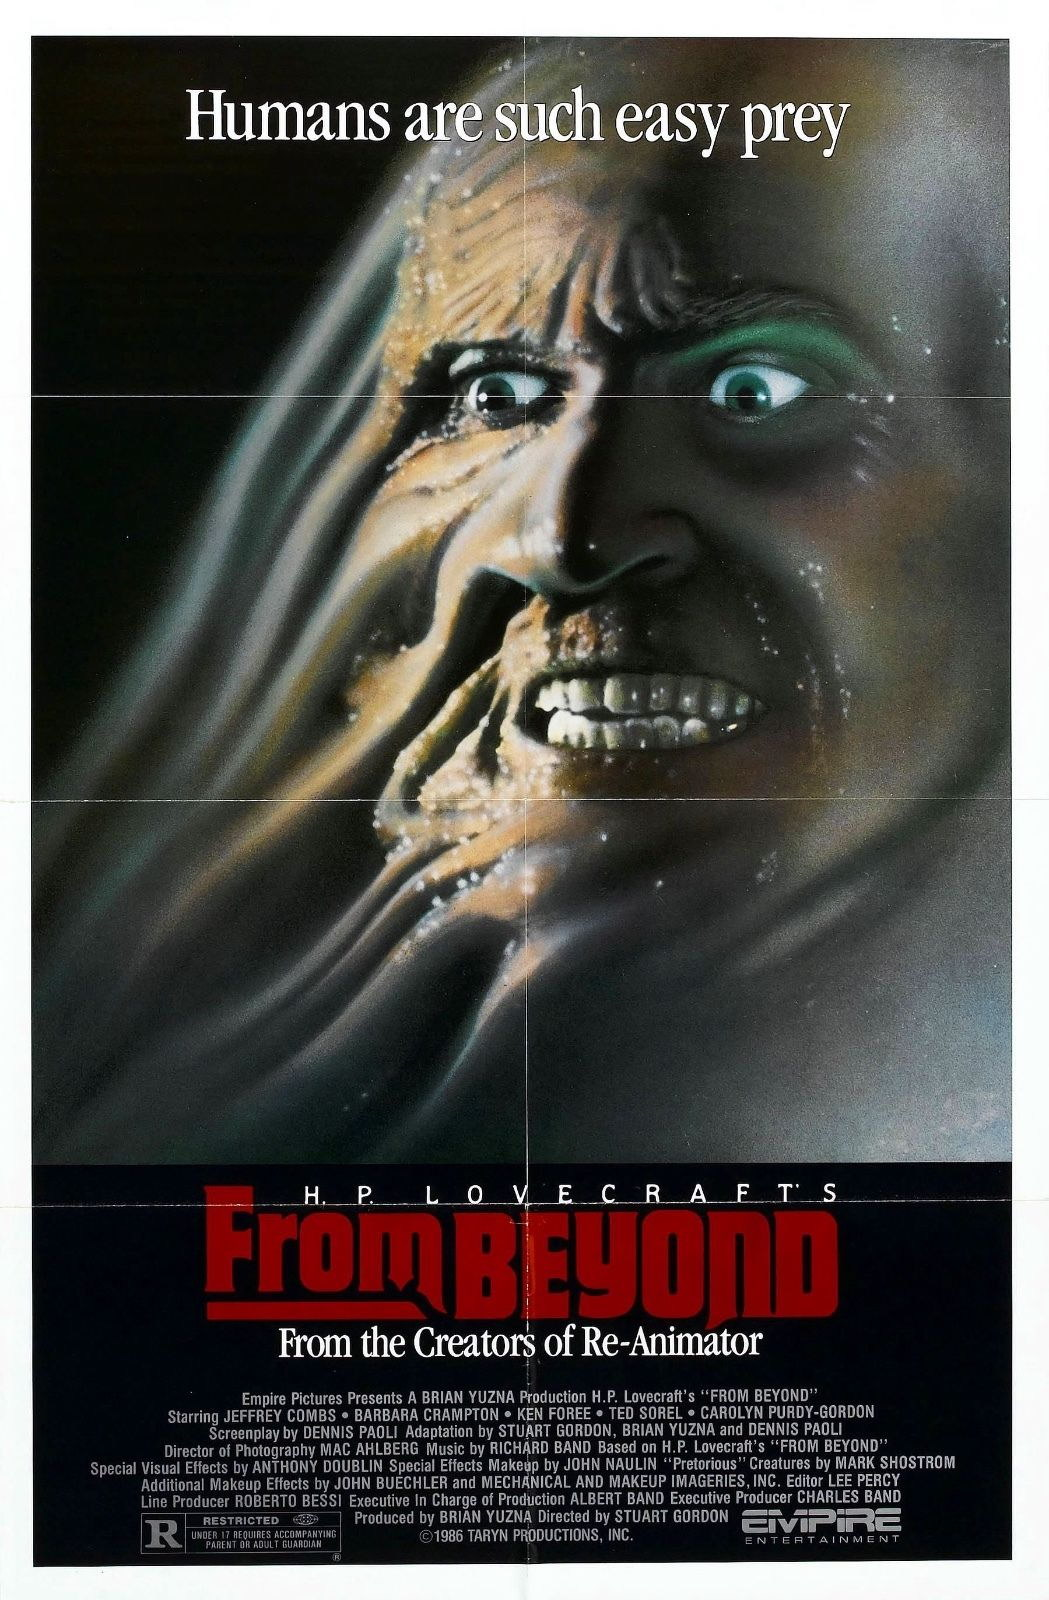 73435-From-Beyond-Movie-1986-Fantasy-Drama-Wall-Print-Poster-Affiche